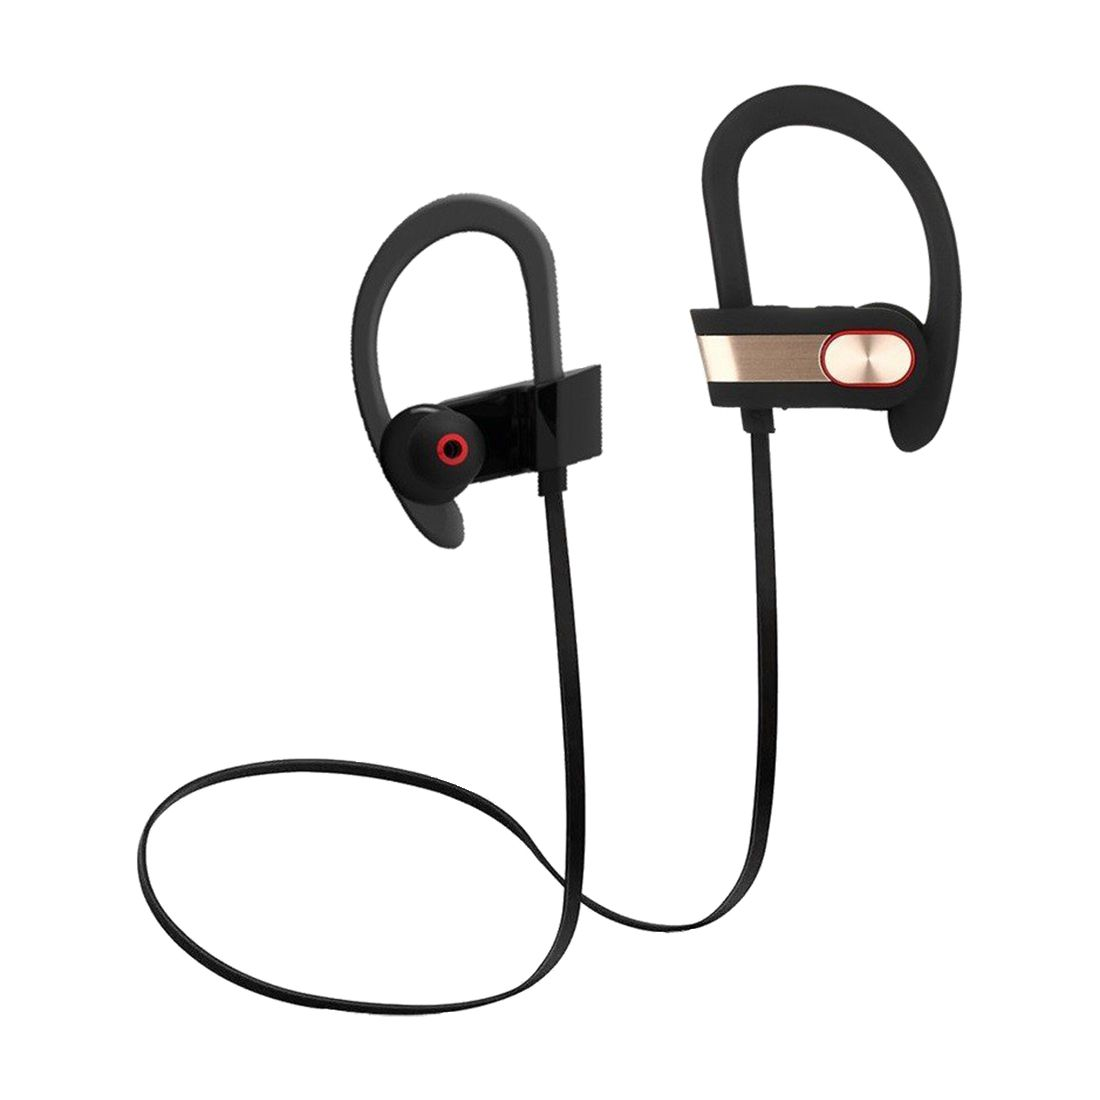 Wireless Sport Bluetooth Headset, Lightweight, Sweatproof, EarHook, for Running, Talking & Listening